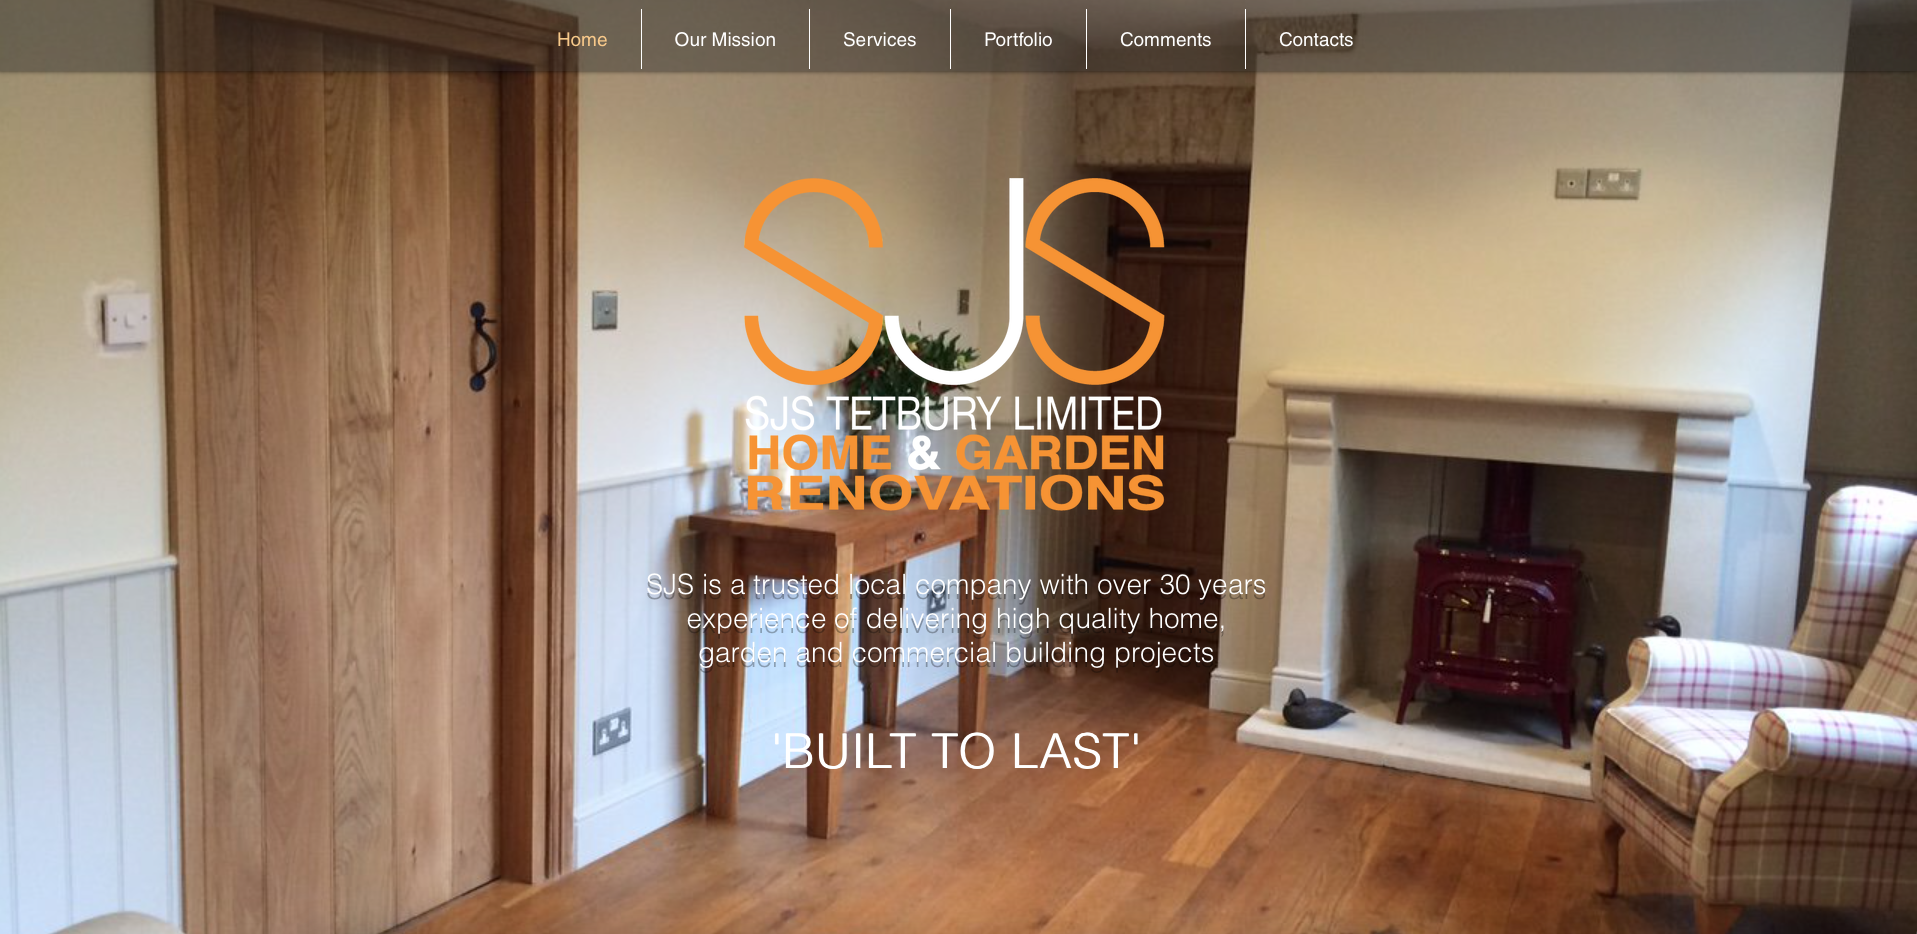 SJS Tetbury Website